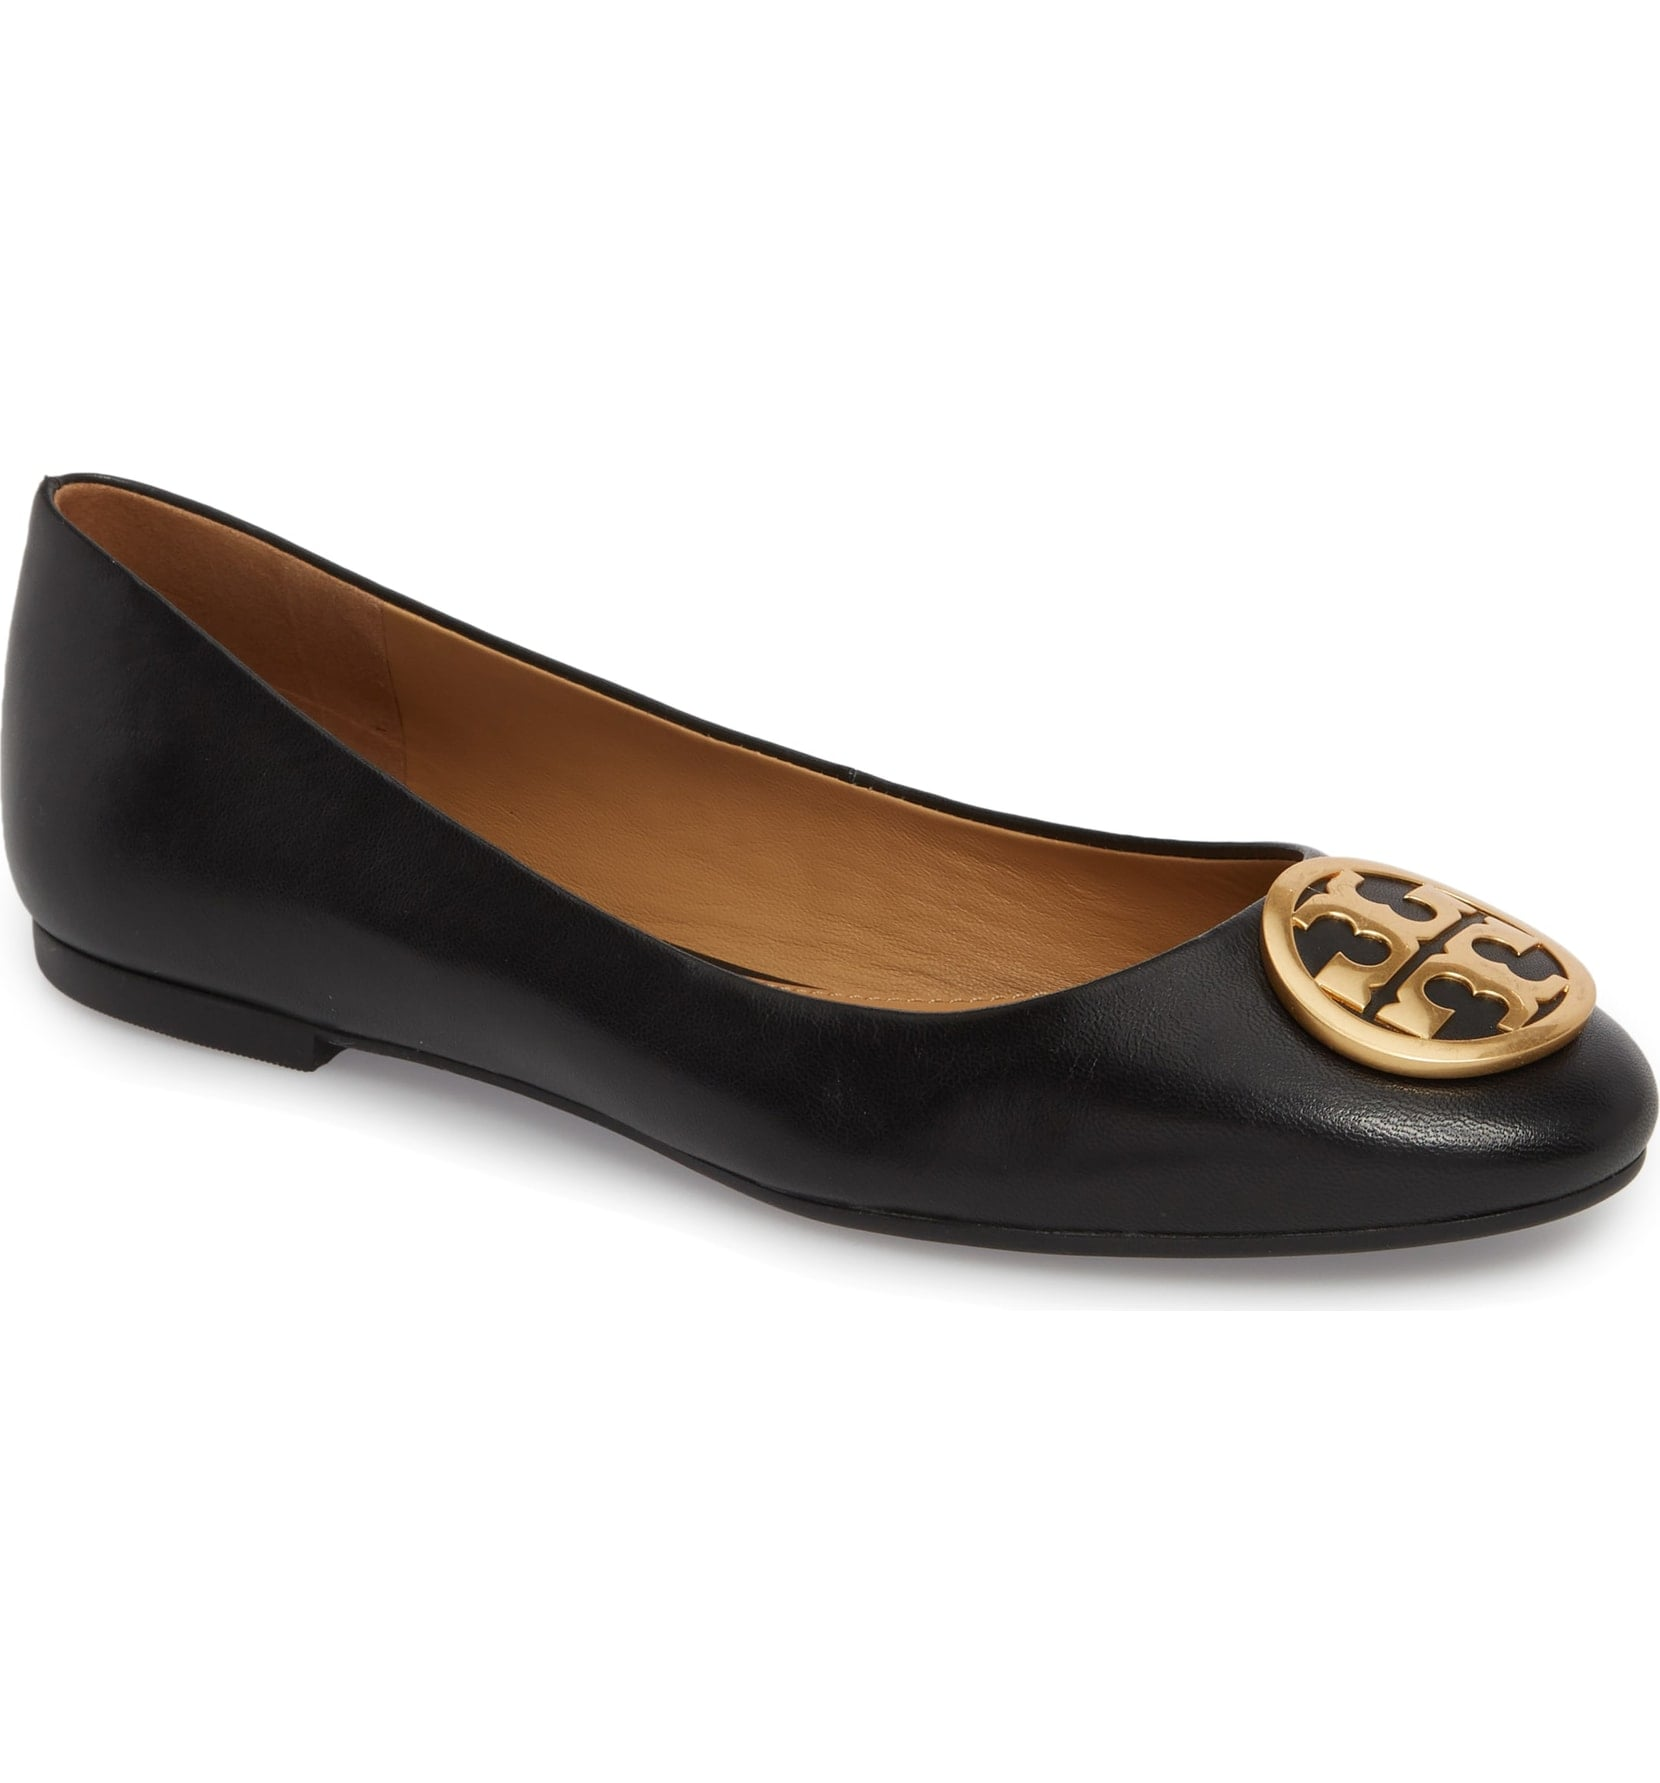 0316a68a9 Nordstrom Anniversary Sale Tory Burch Flats 2018. You Know Those Iconic ...